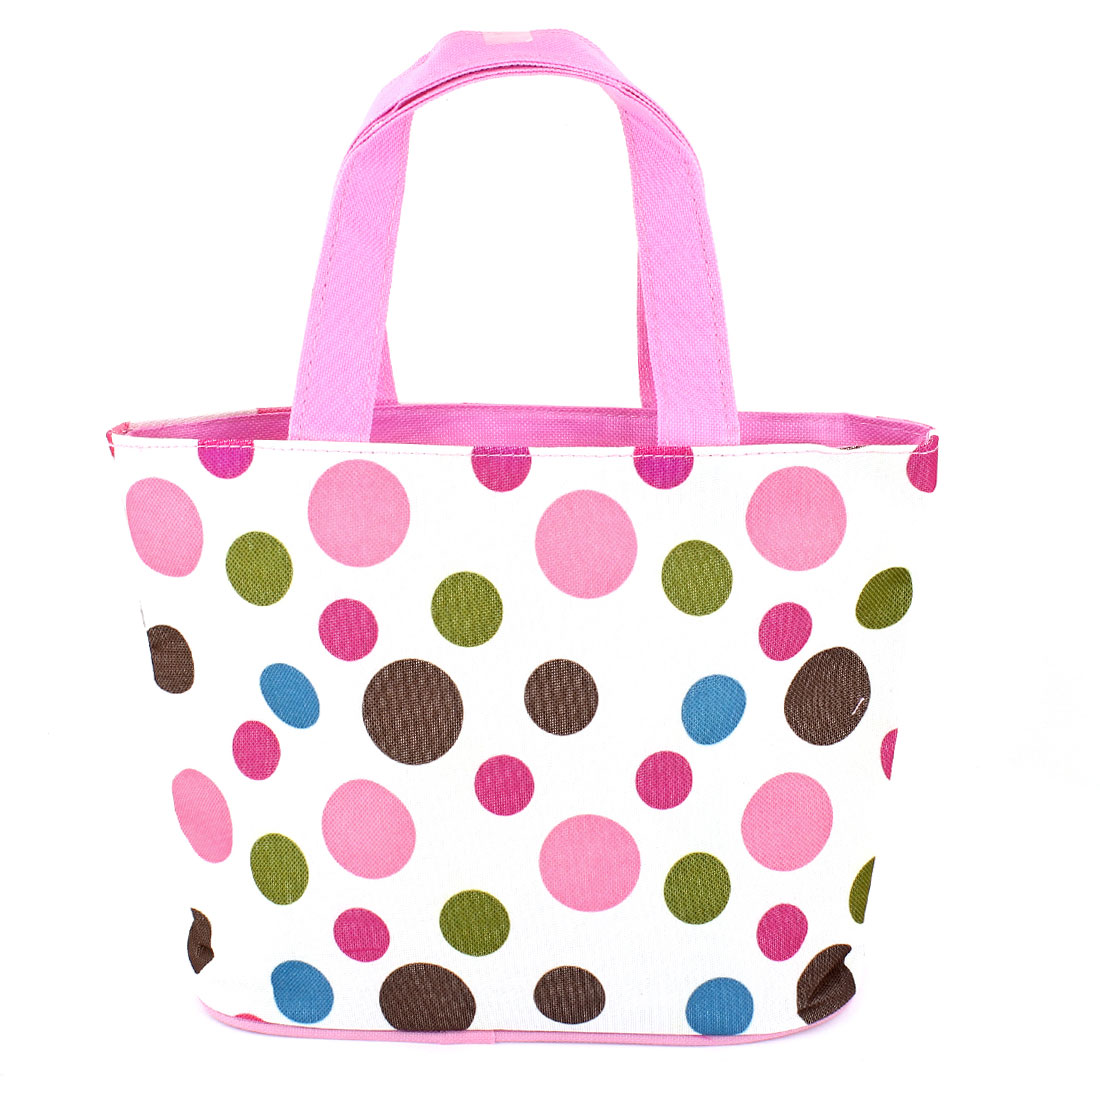 Portable Zipper Colorful Dotted Printed Polyester Shopping Tote Bag Pink